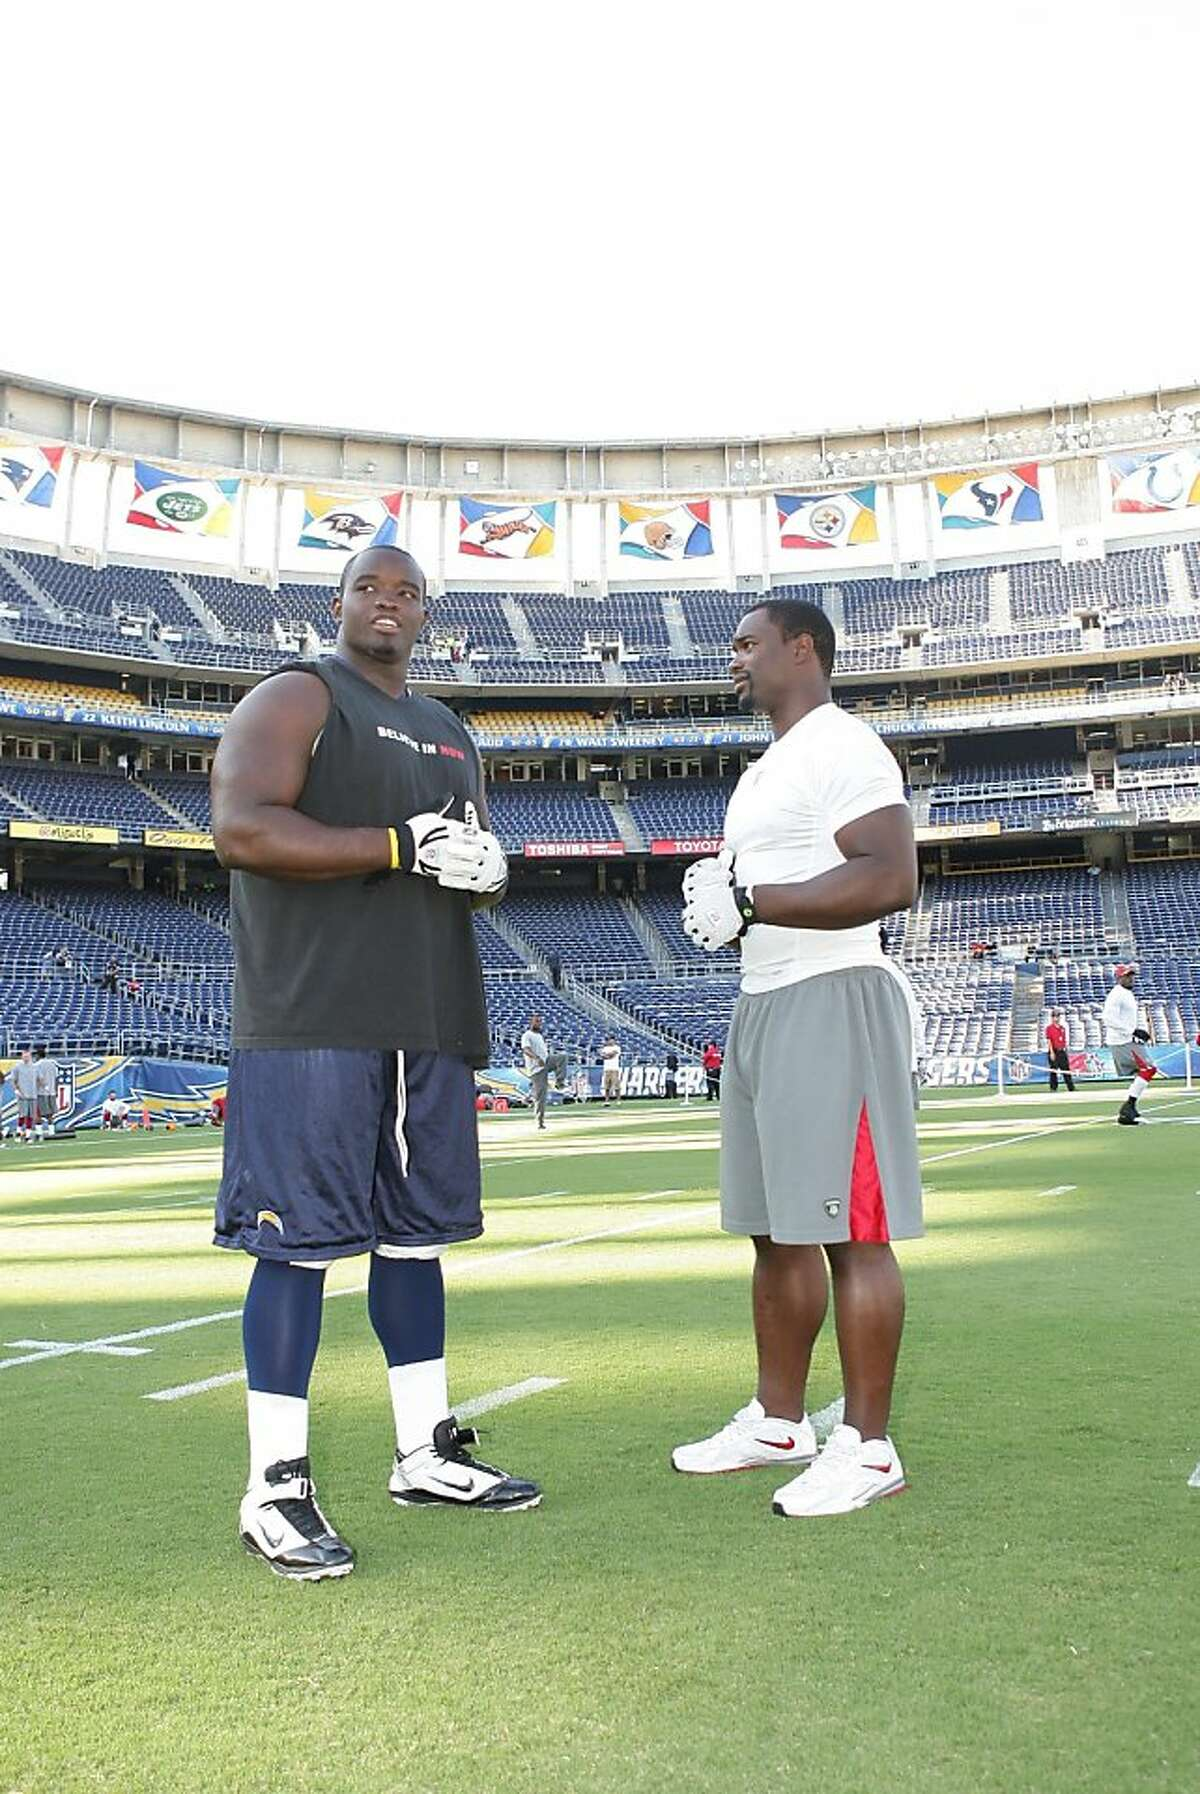 Ogemdi Nwagbuo (right) of the Chargers is half-brother to the 49ers' Xavier Omon. They are shown after meeting for the first time, on Sept. 1, 2011.